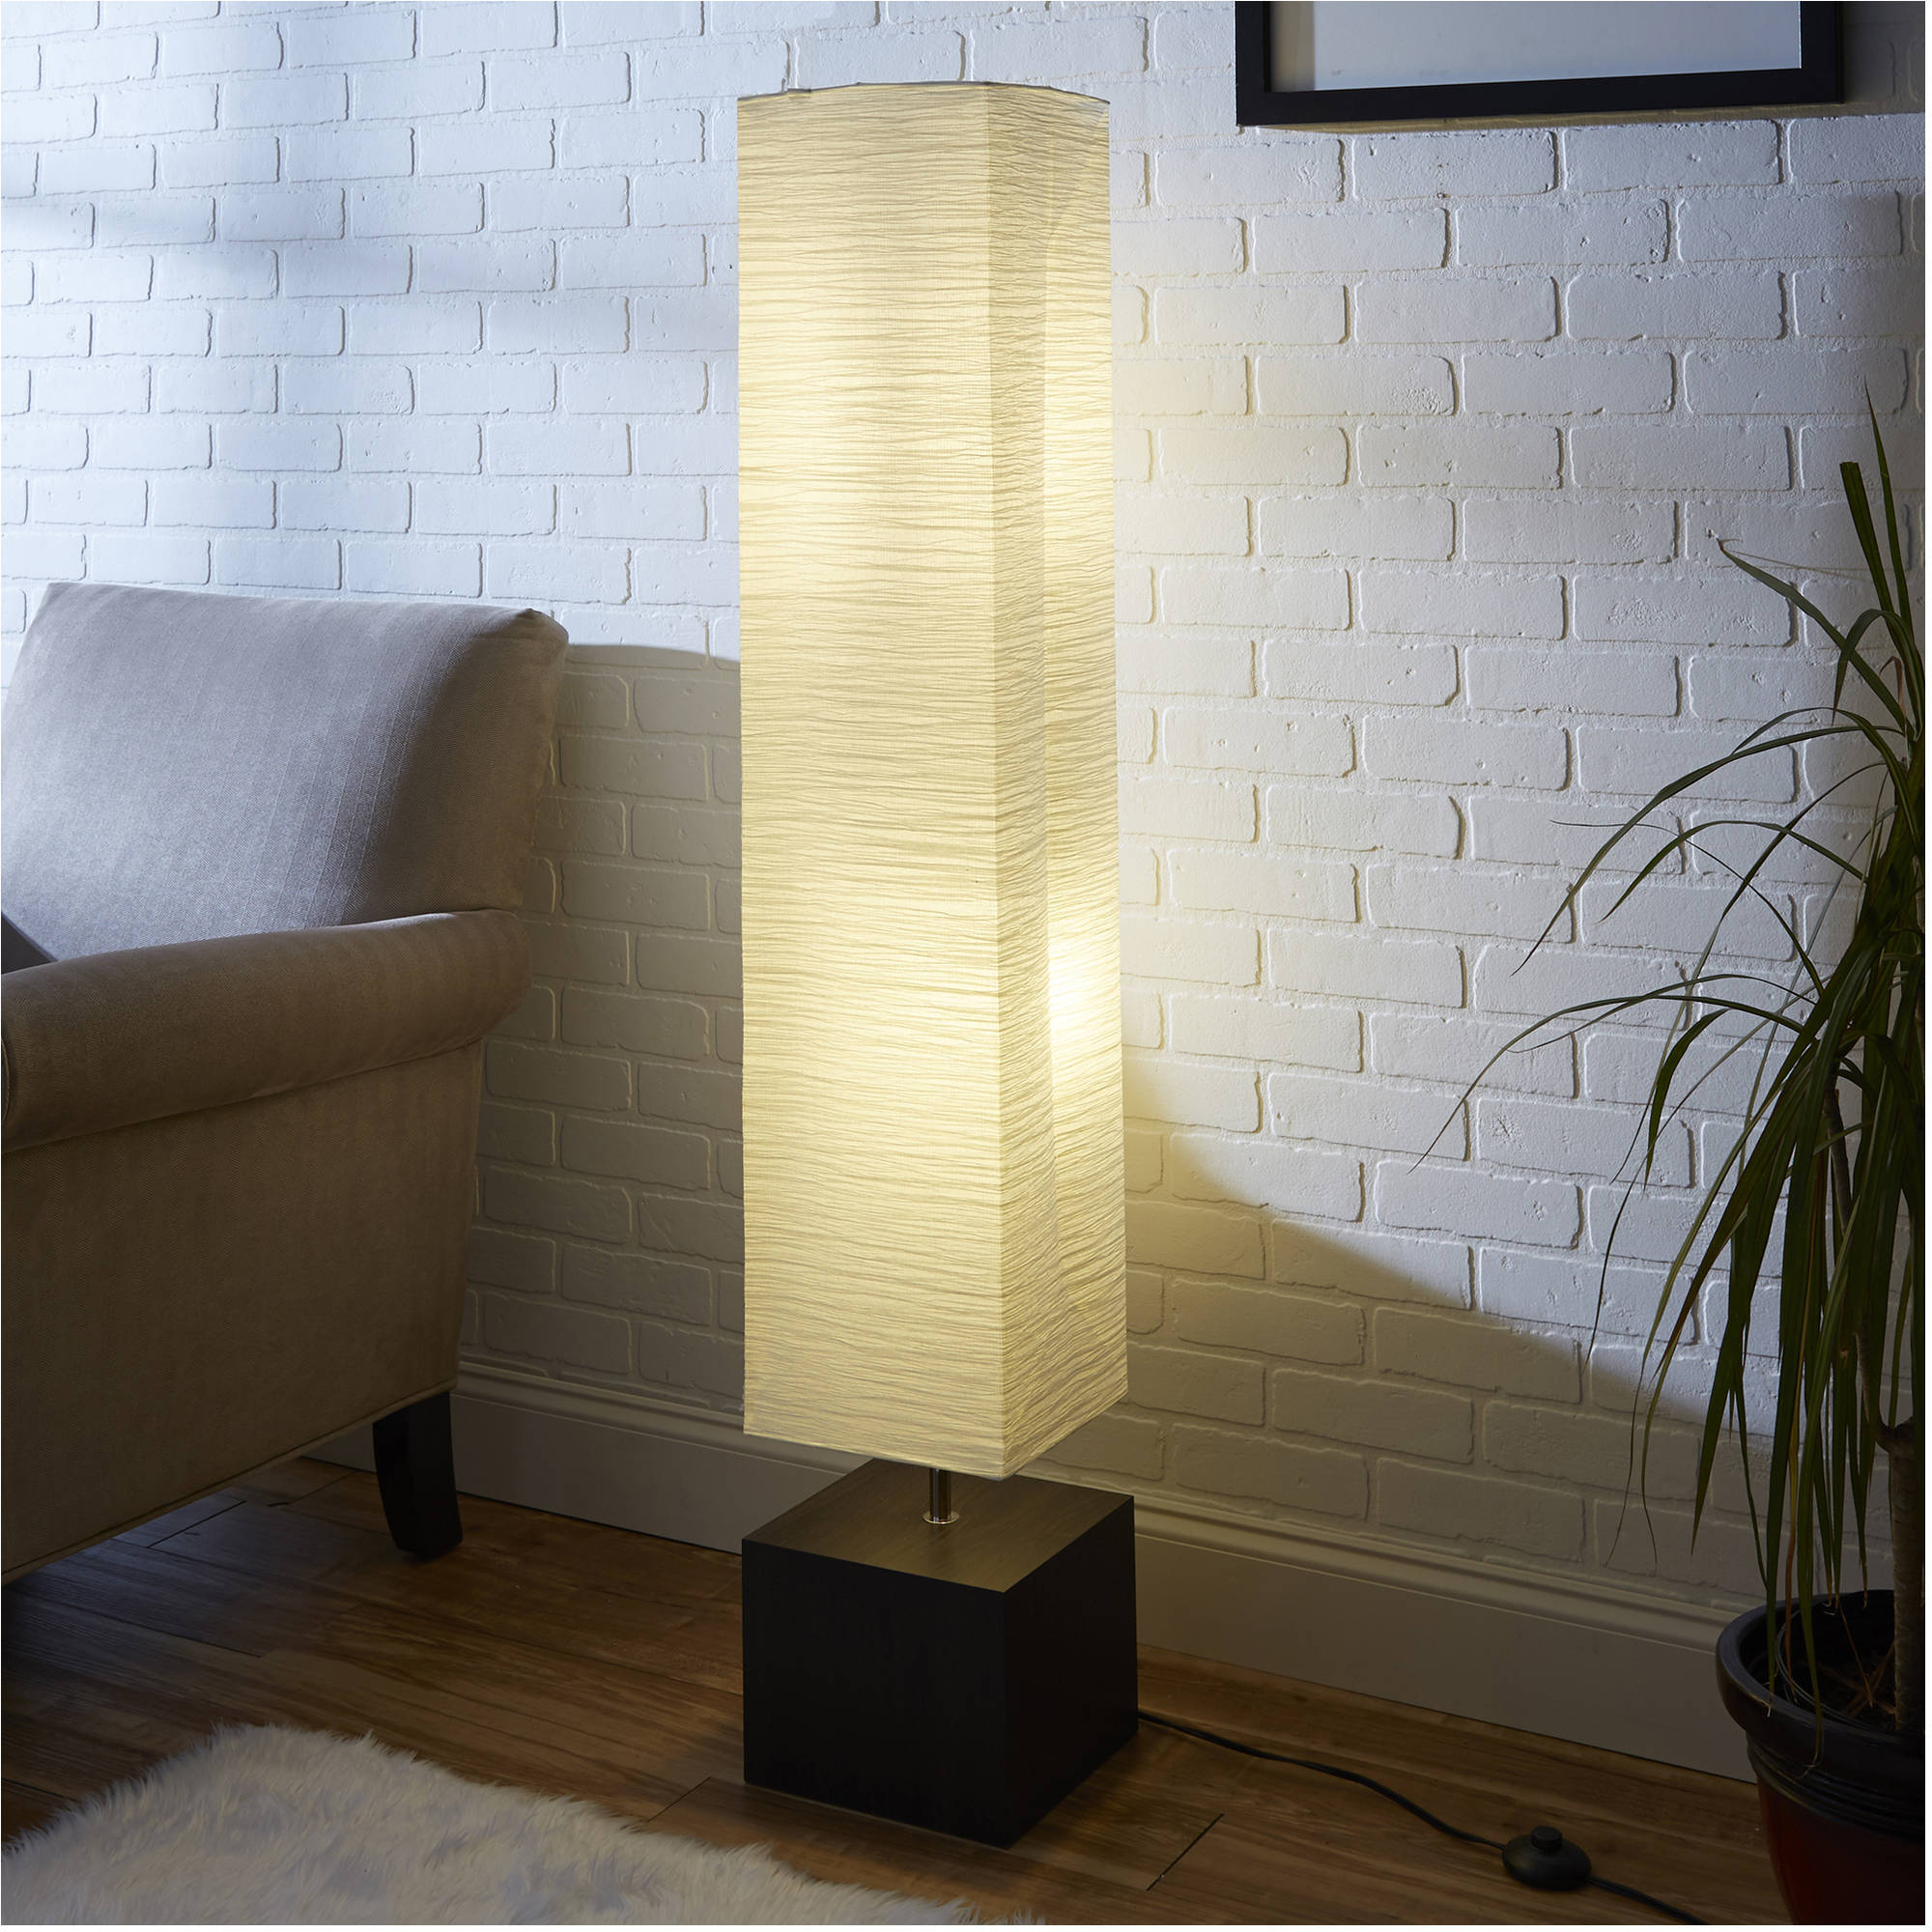 New modern 58 square rice paper floor lamp wood finish living room new modern 58 square rice paper floor lamp wood finish living room office decor 764022417405 ebay mozeypictures Image collections